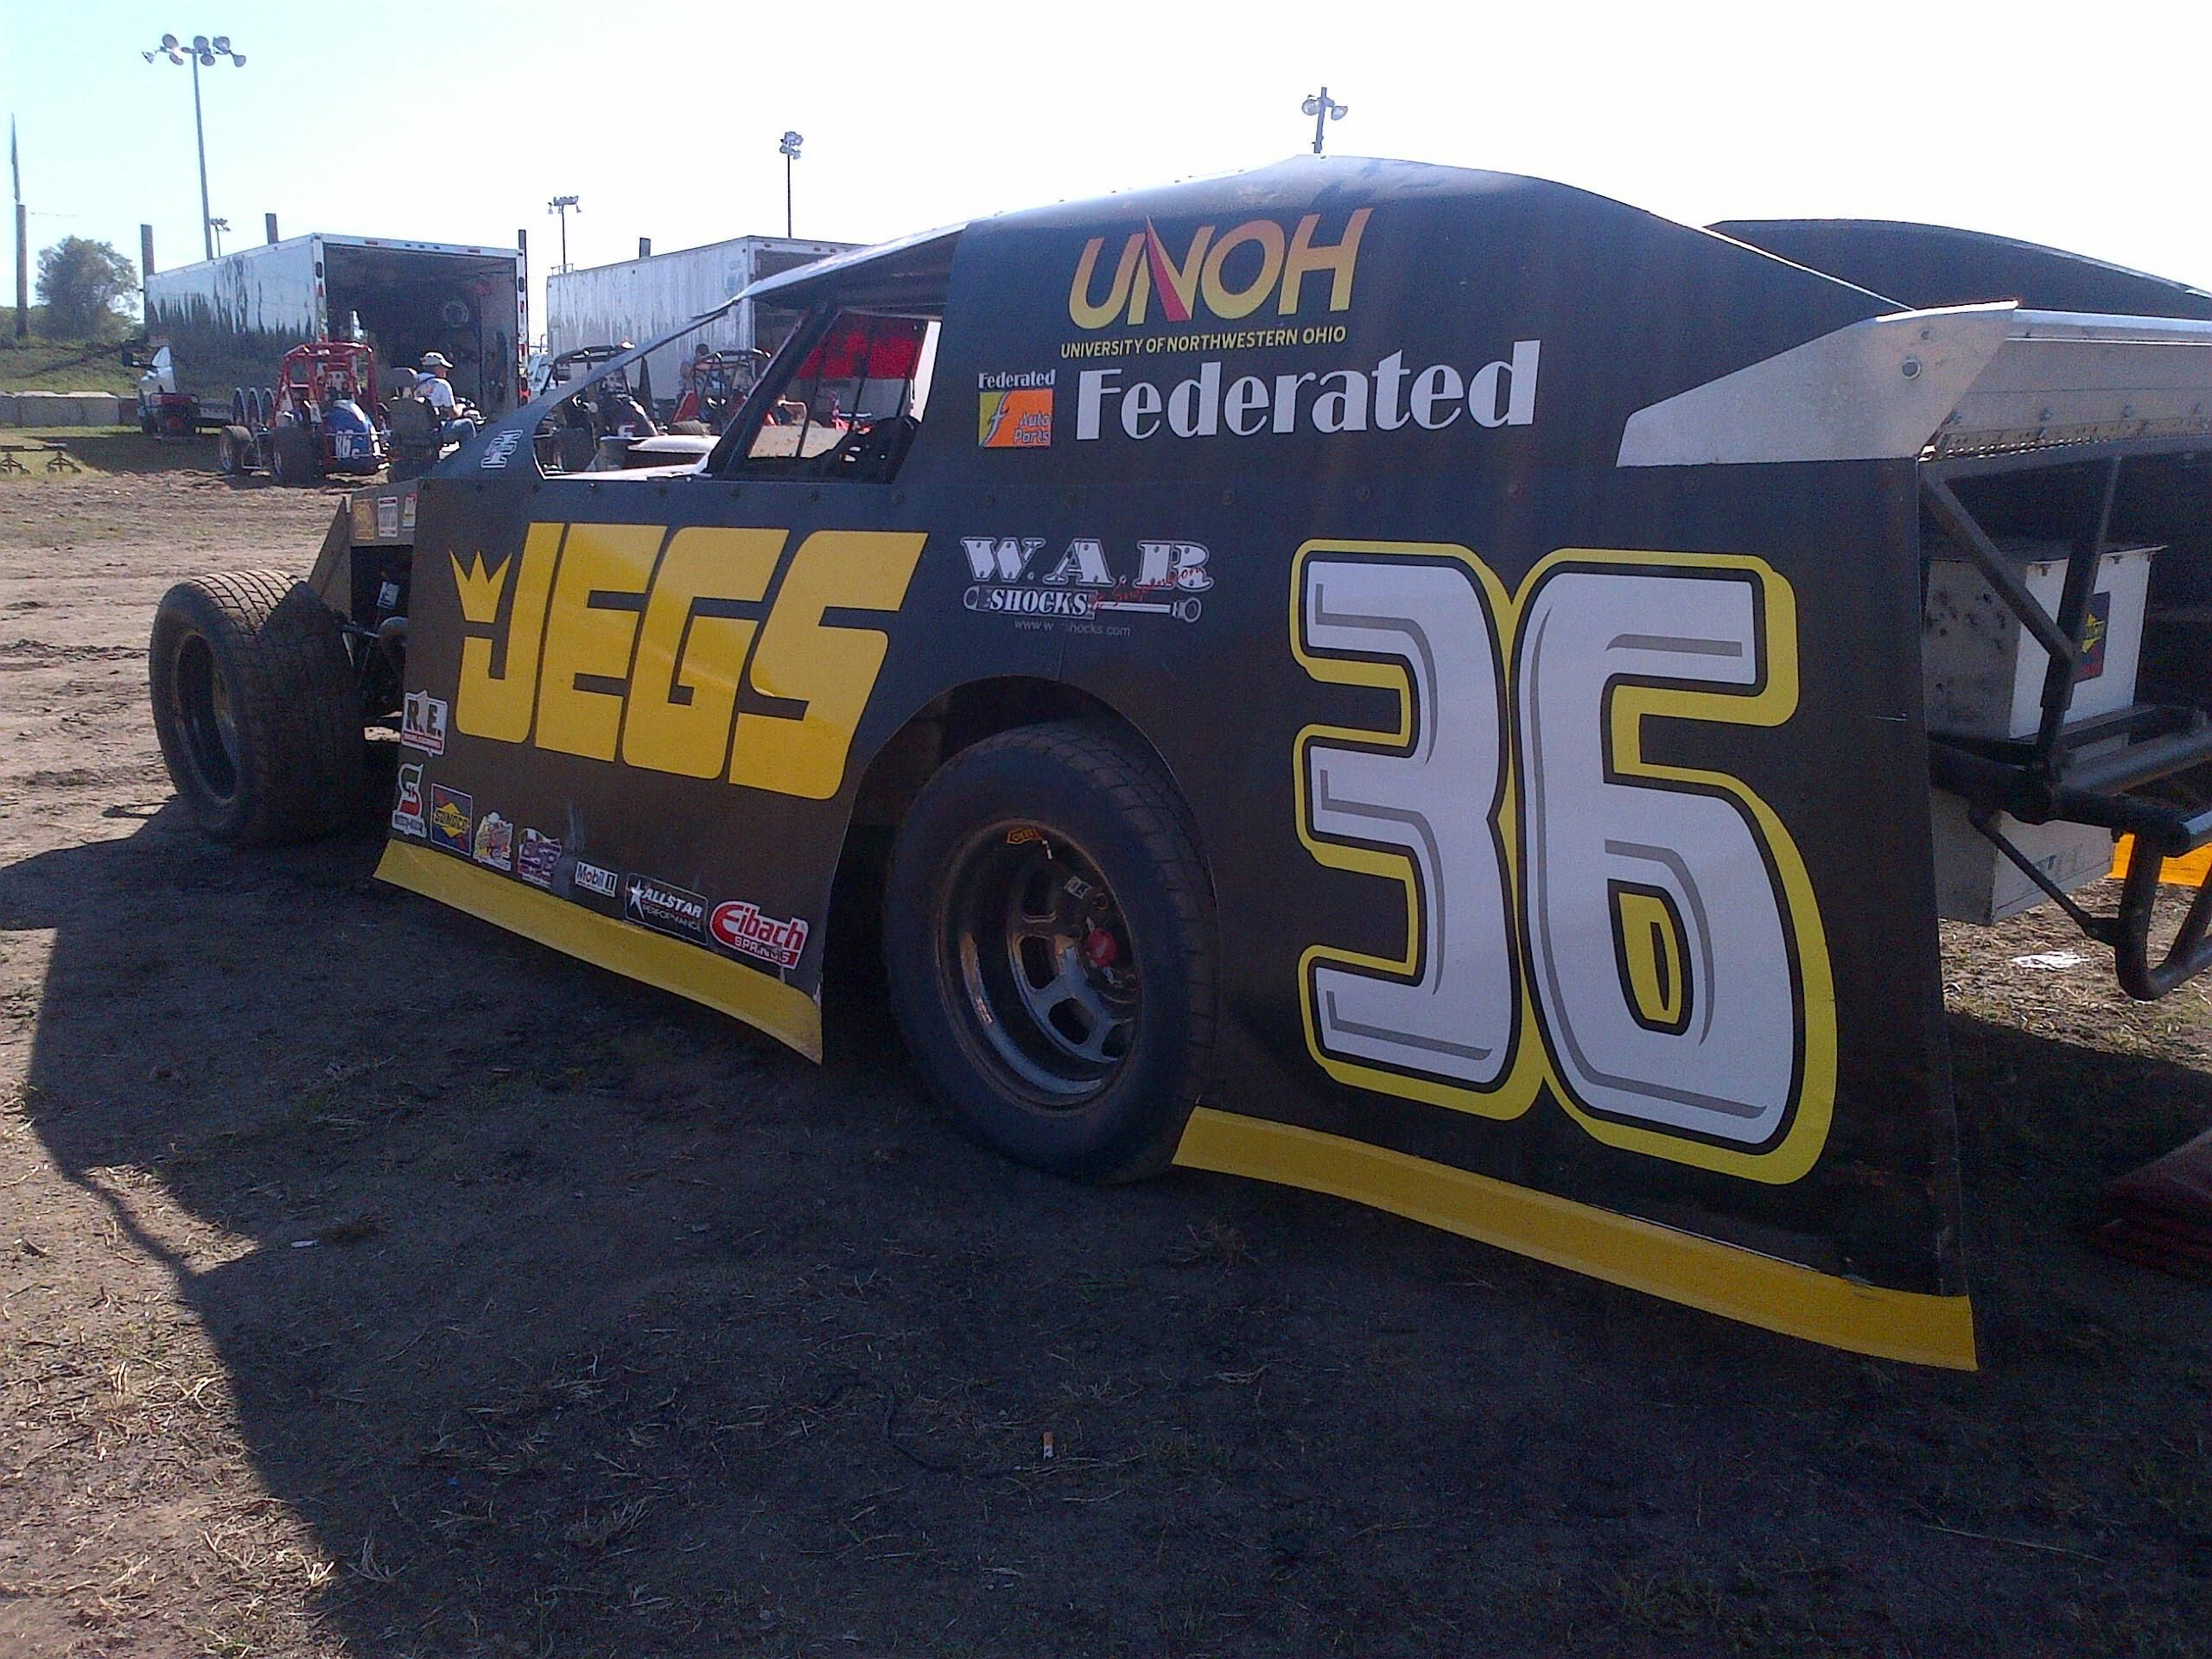 Kenny Wallace's Dirt Modified   JEGS Racing   Dirt racing